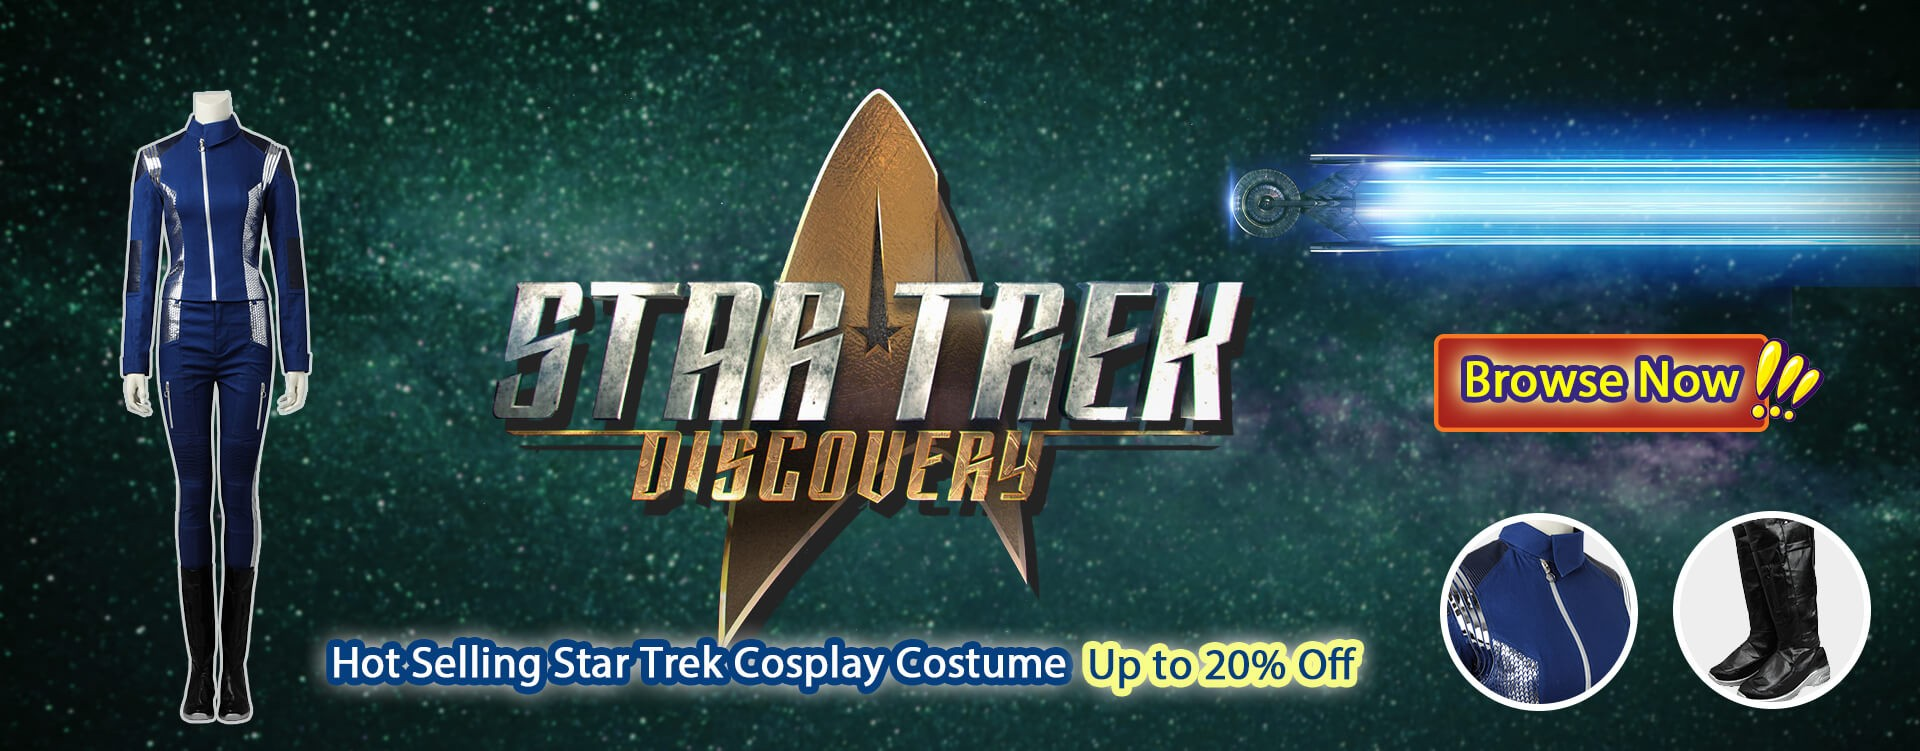 Hot Selling Star Trek Cosplay Costume Up to 20% Off